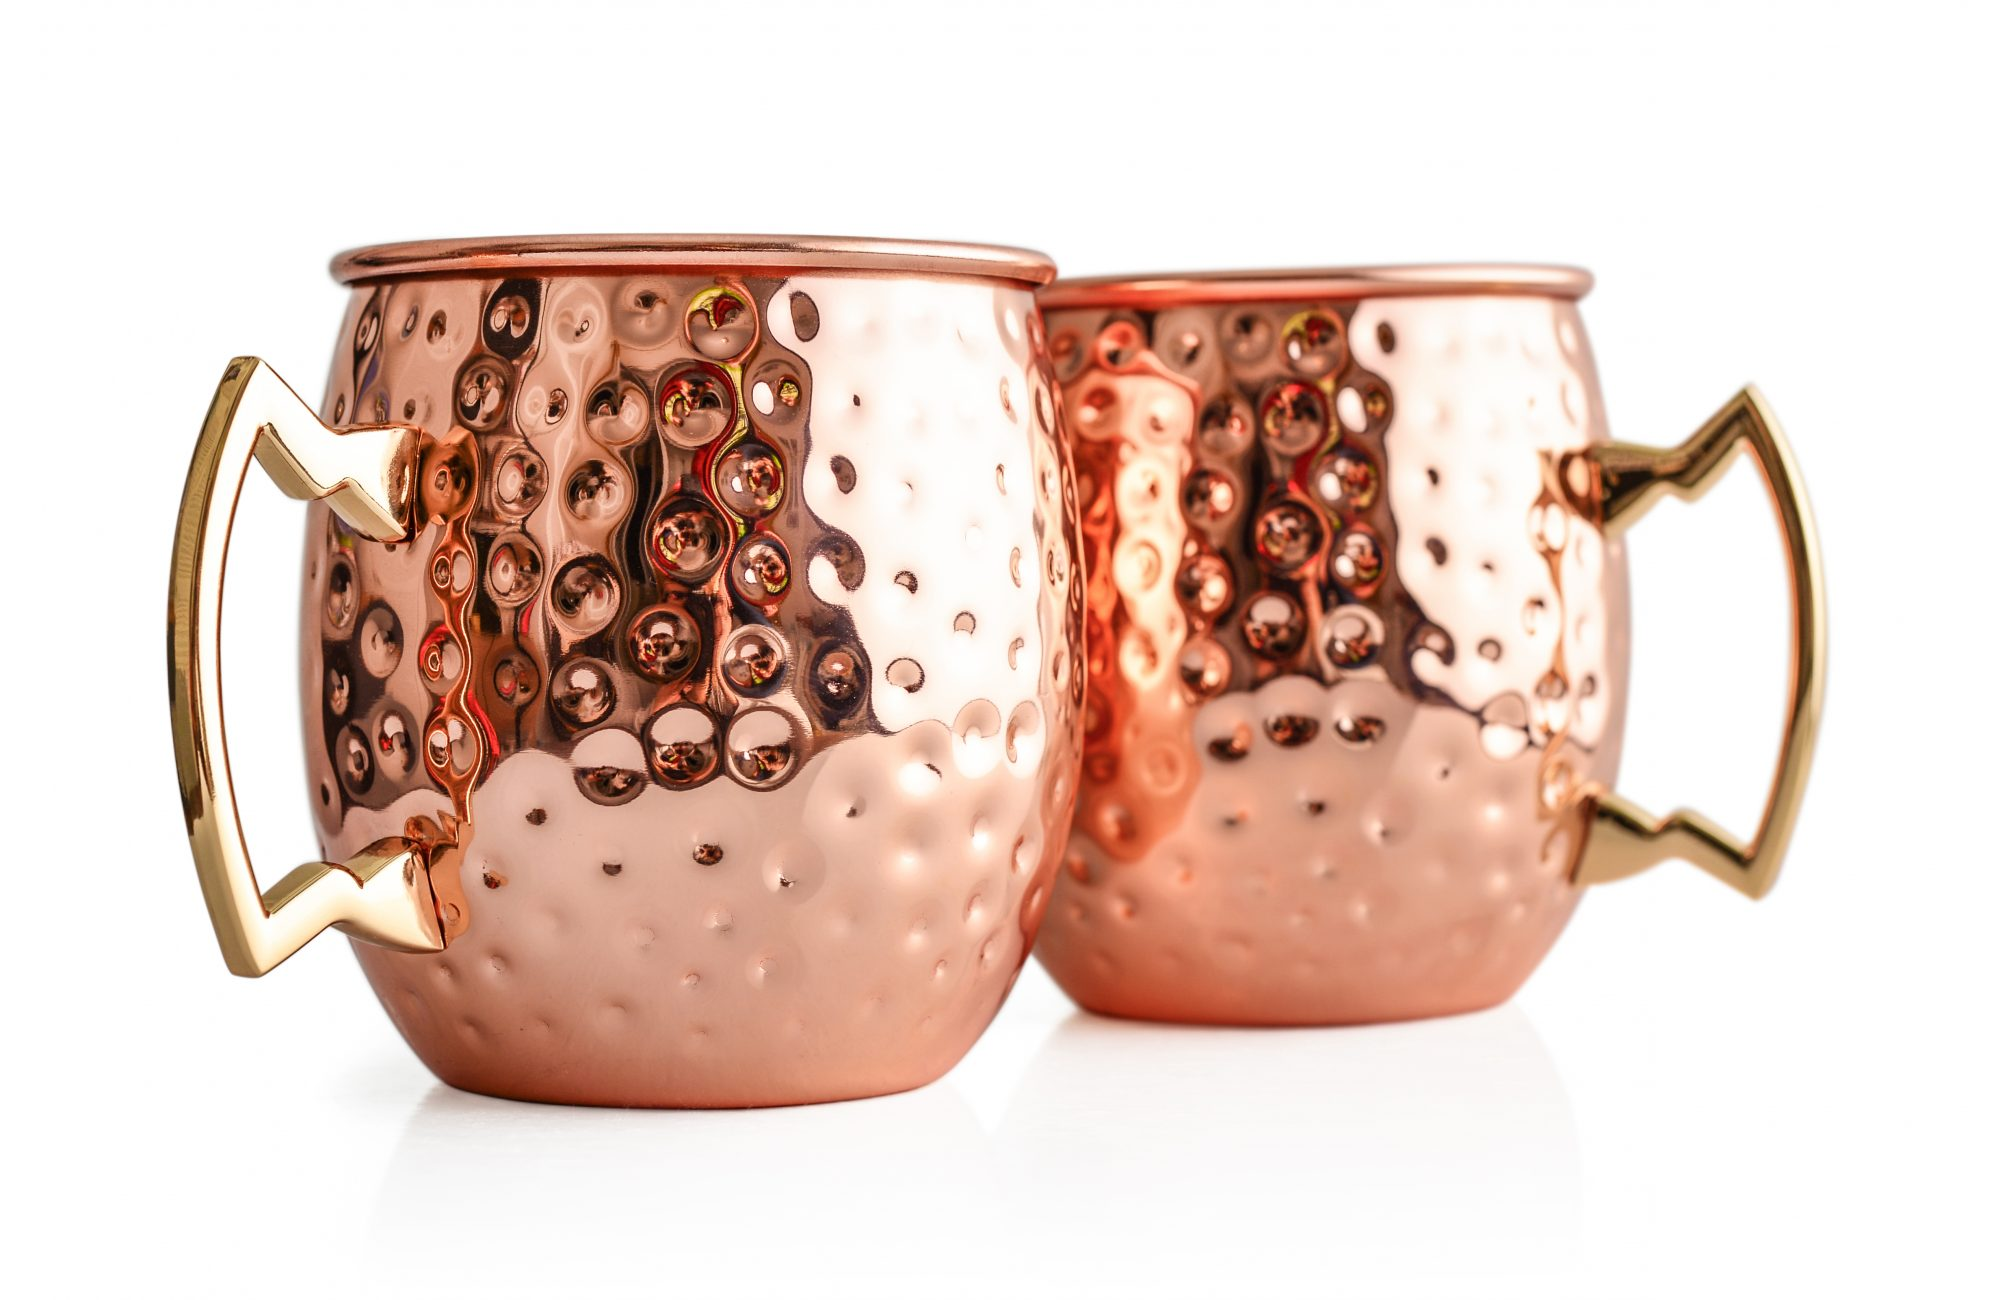 Why Are Moscow Mules Served in Copper Mugs?